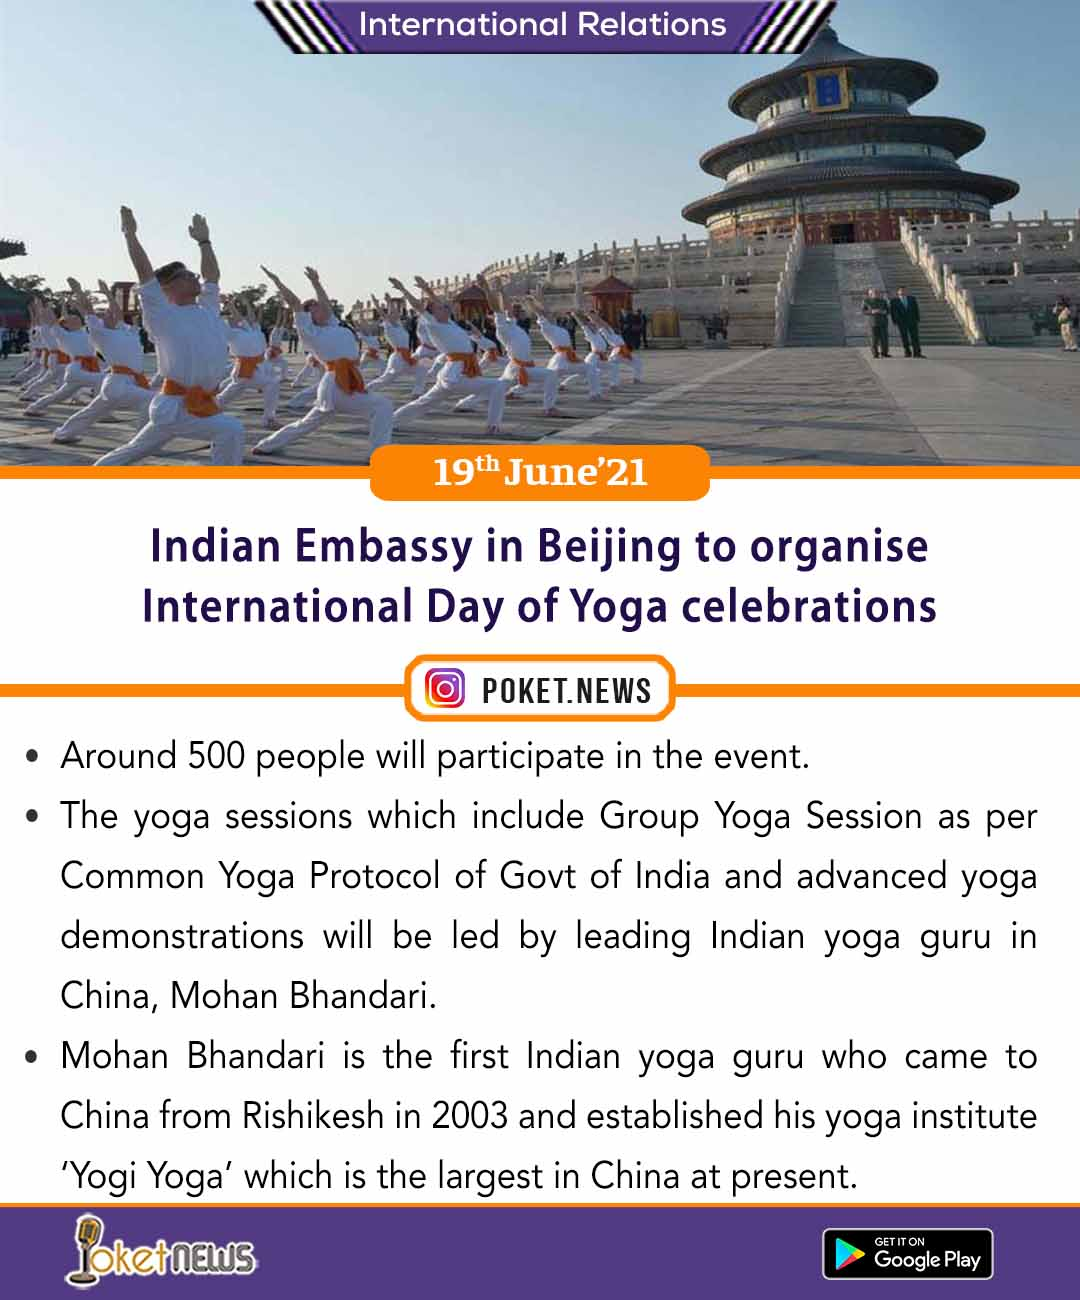 Indian Embassy in Beijing to organise International Day of Yoga celebrations